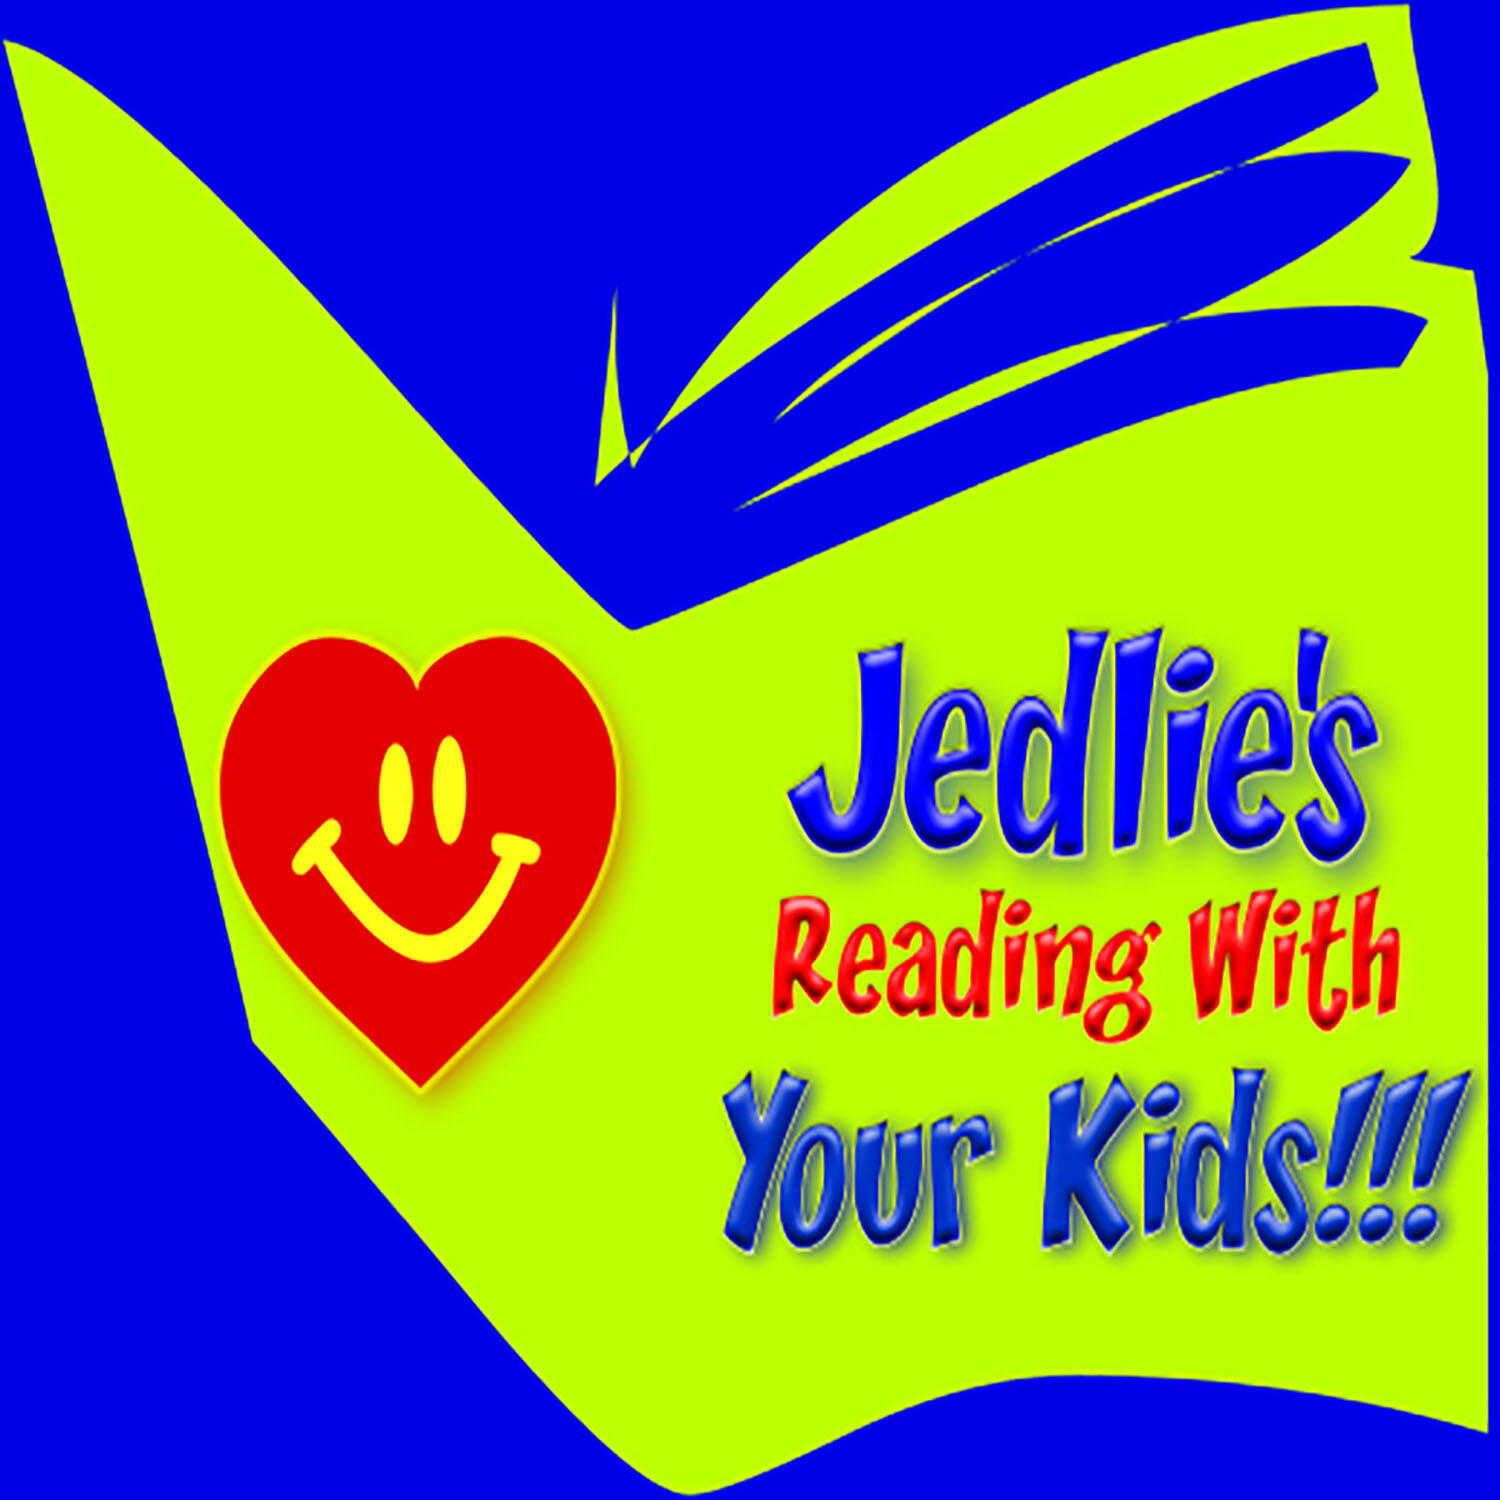 Listen to the Reading With Your Kids Podcast Episode - Reading With Your Kids - When You Lived In My Belly on iHeartRadio | iHeartRadio